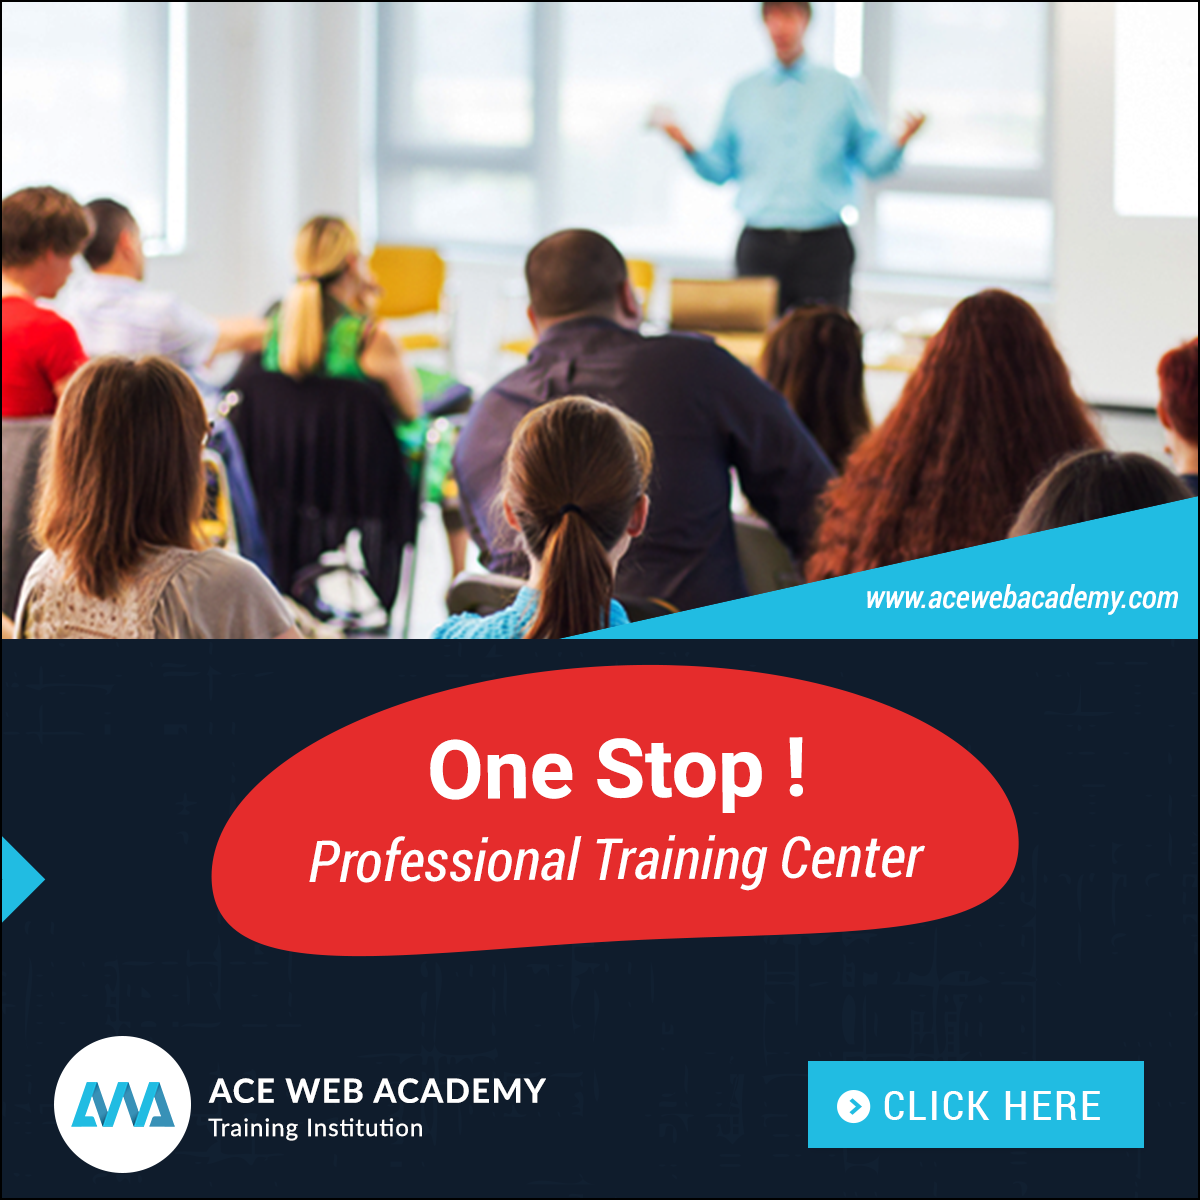 Aceweb ace web academy - one stop professional training center